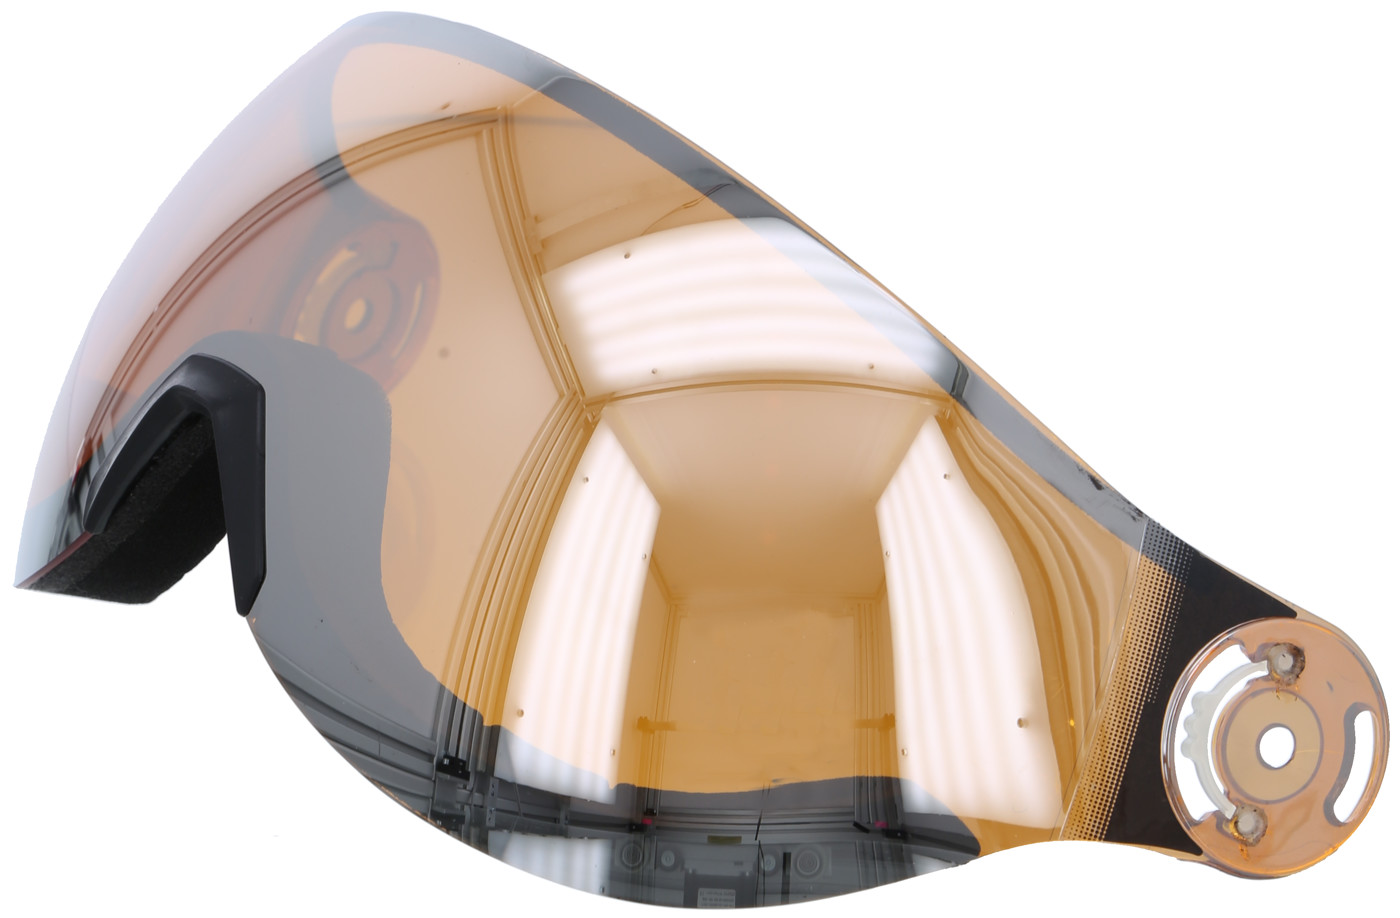 STUF VISOR LENS CATEGORY 2